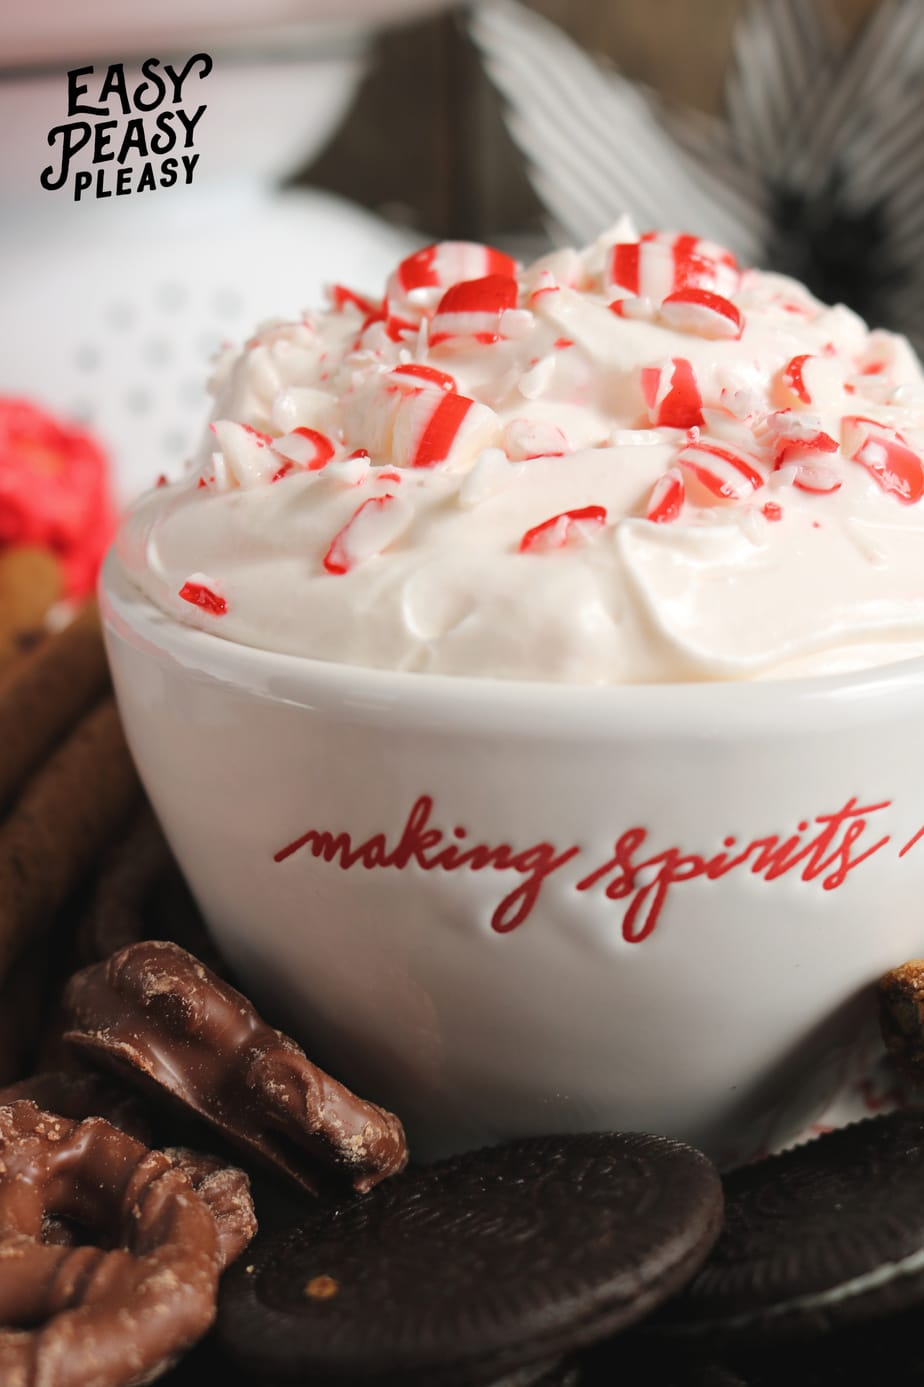 (ad) Easy Peppermint Dip using only 4 Ingredients